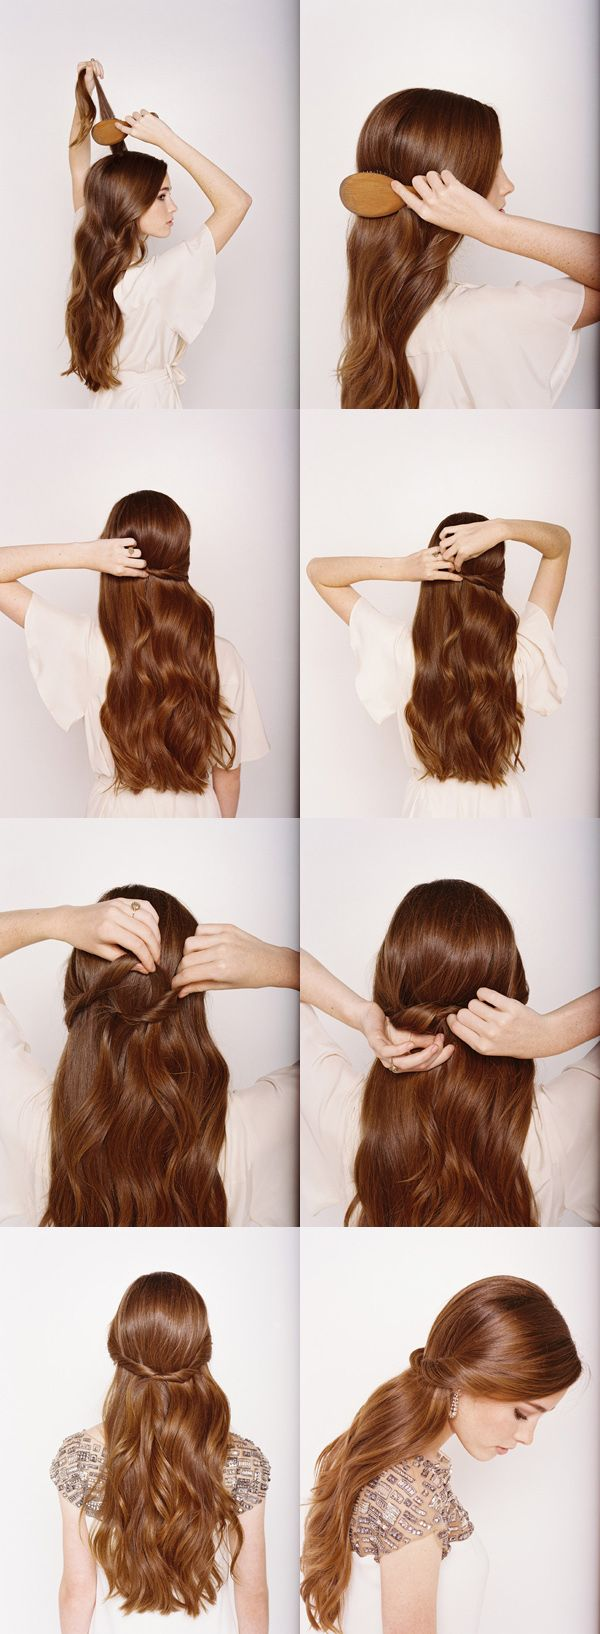 Instructions 1. Start with loose waves in your hair. 2. Backcomb or tease the hair at the crown of your head. 3. Smooth out the top layer. 4. Twist one side of your hair and ***pin it about 2/3 of the way across your head*** (this is the big trick that will allow you to hide your tracks!) 5. Now twist the other side and tuck it under the first part. 6. Again, pin that piece about 2/3 of the way across your head.